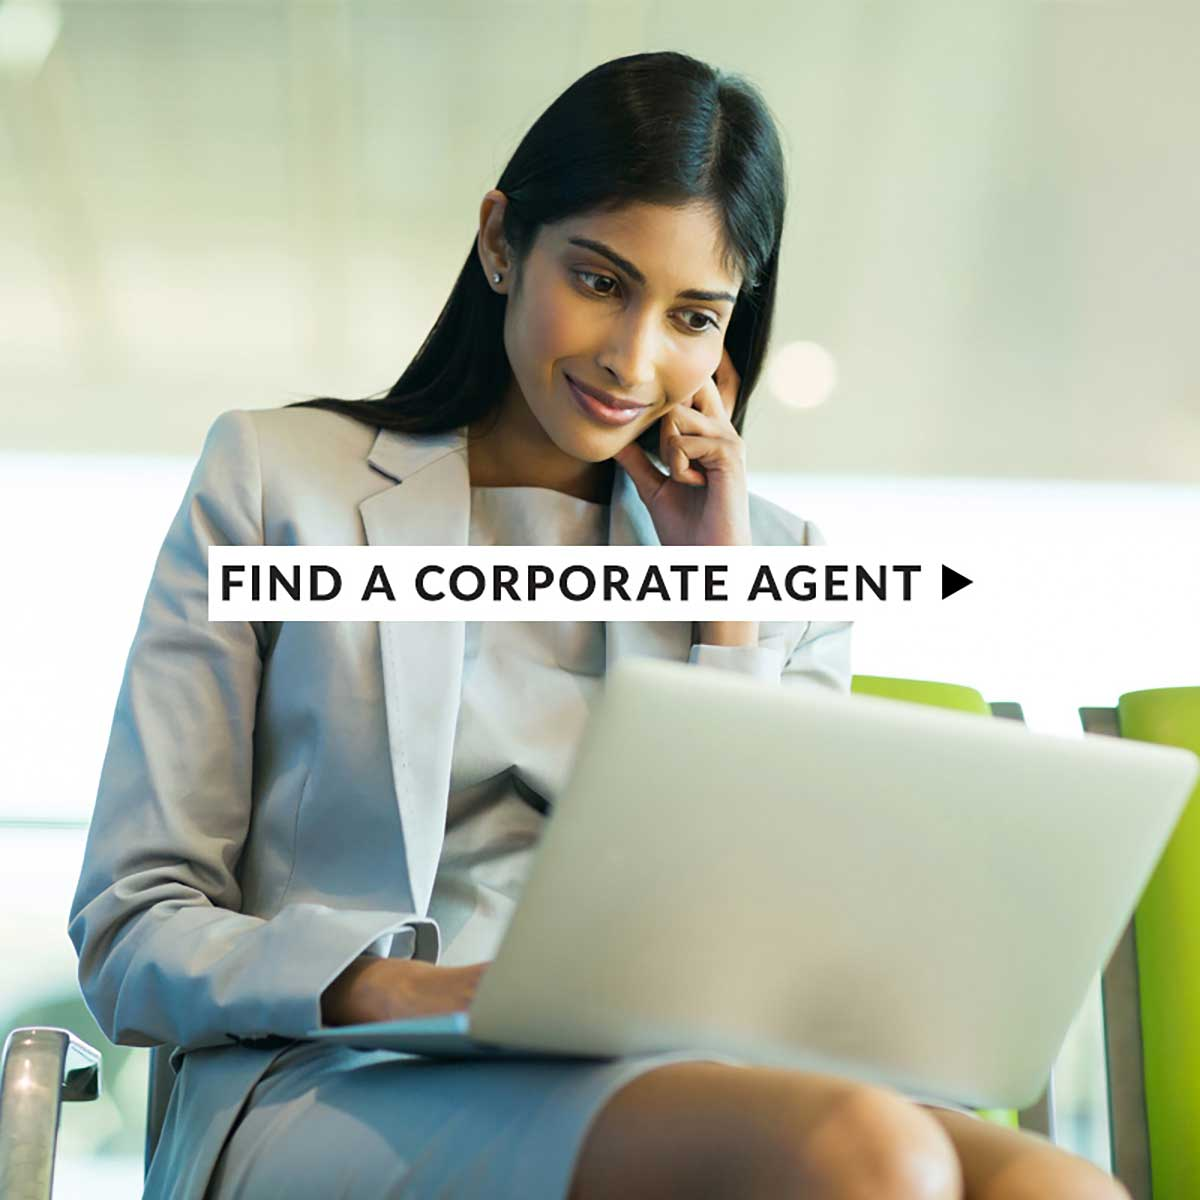 Find a Corporate Agent